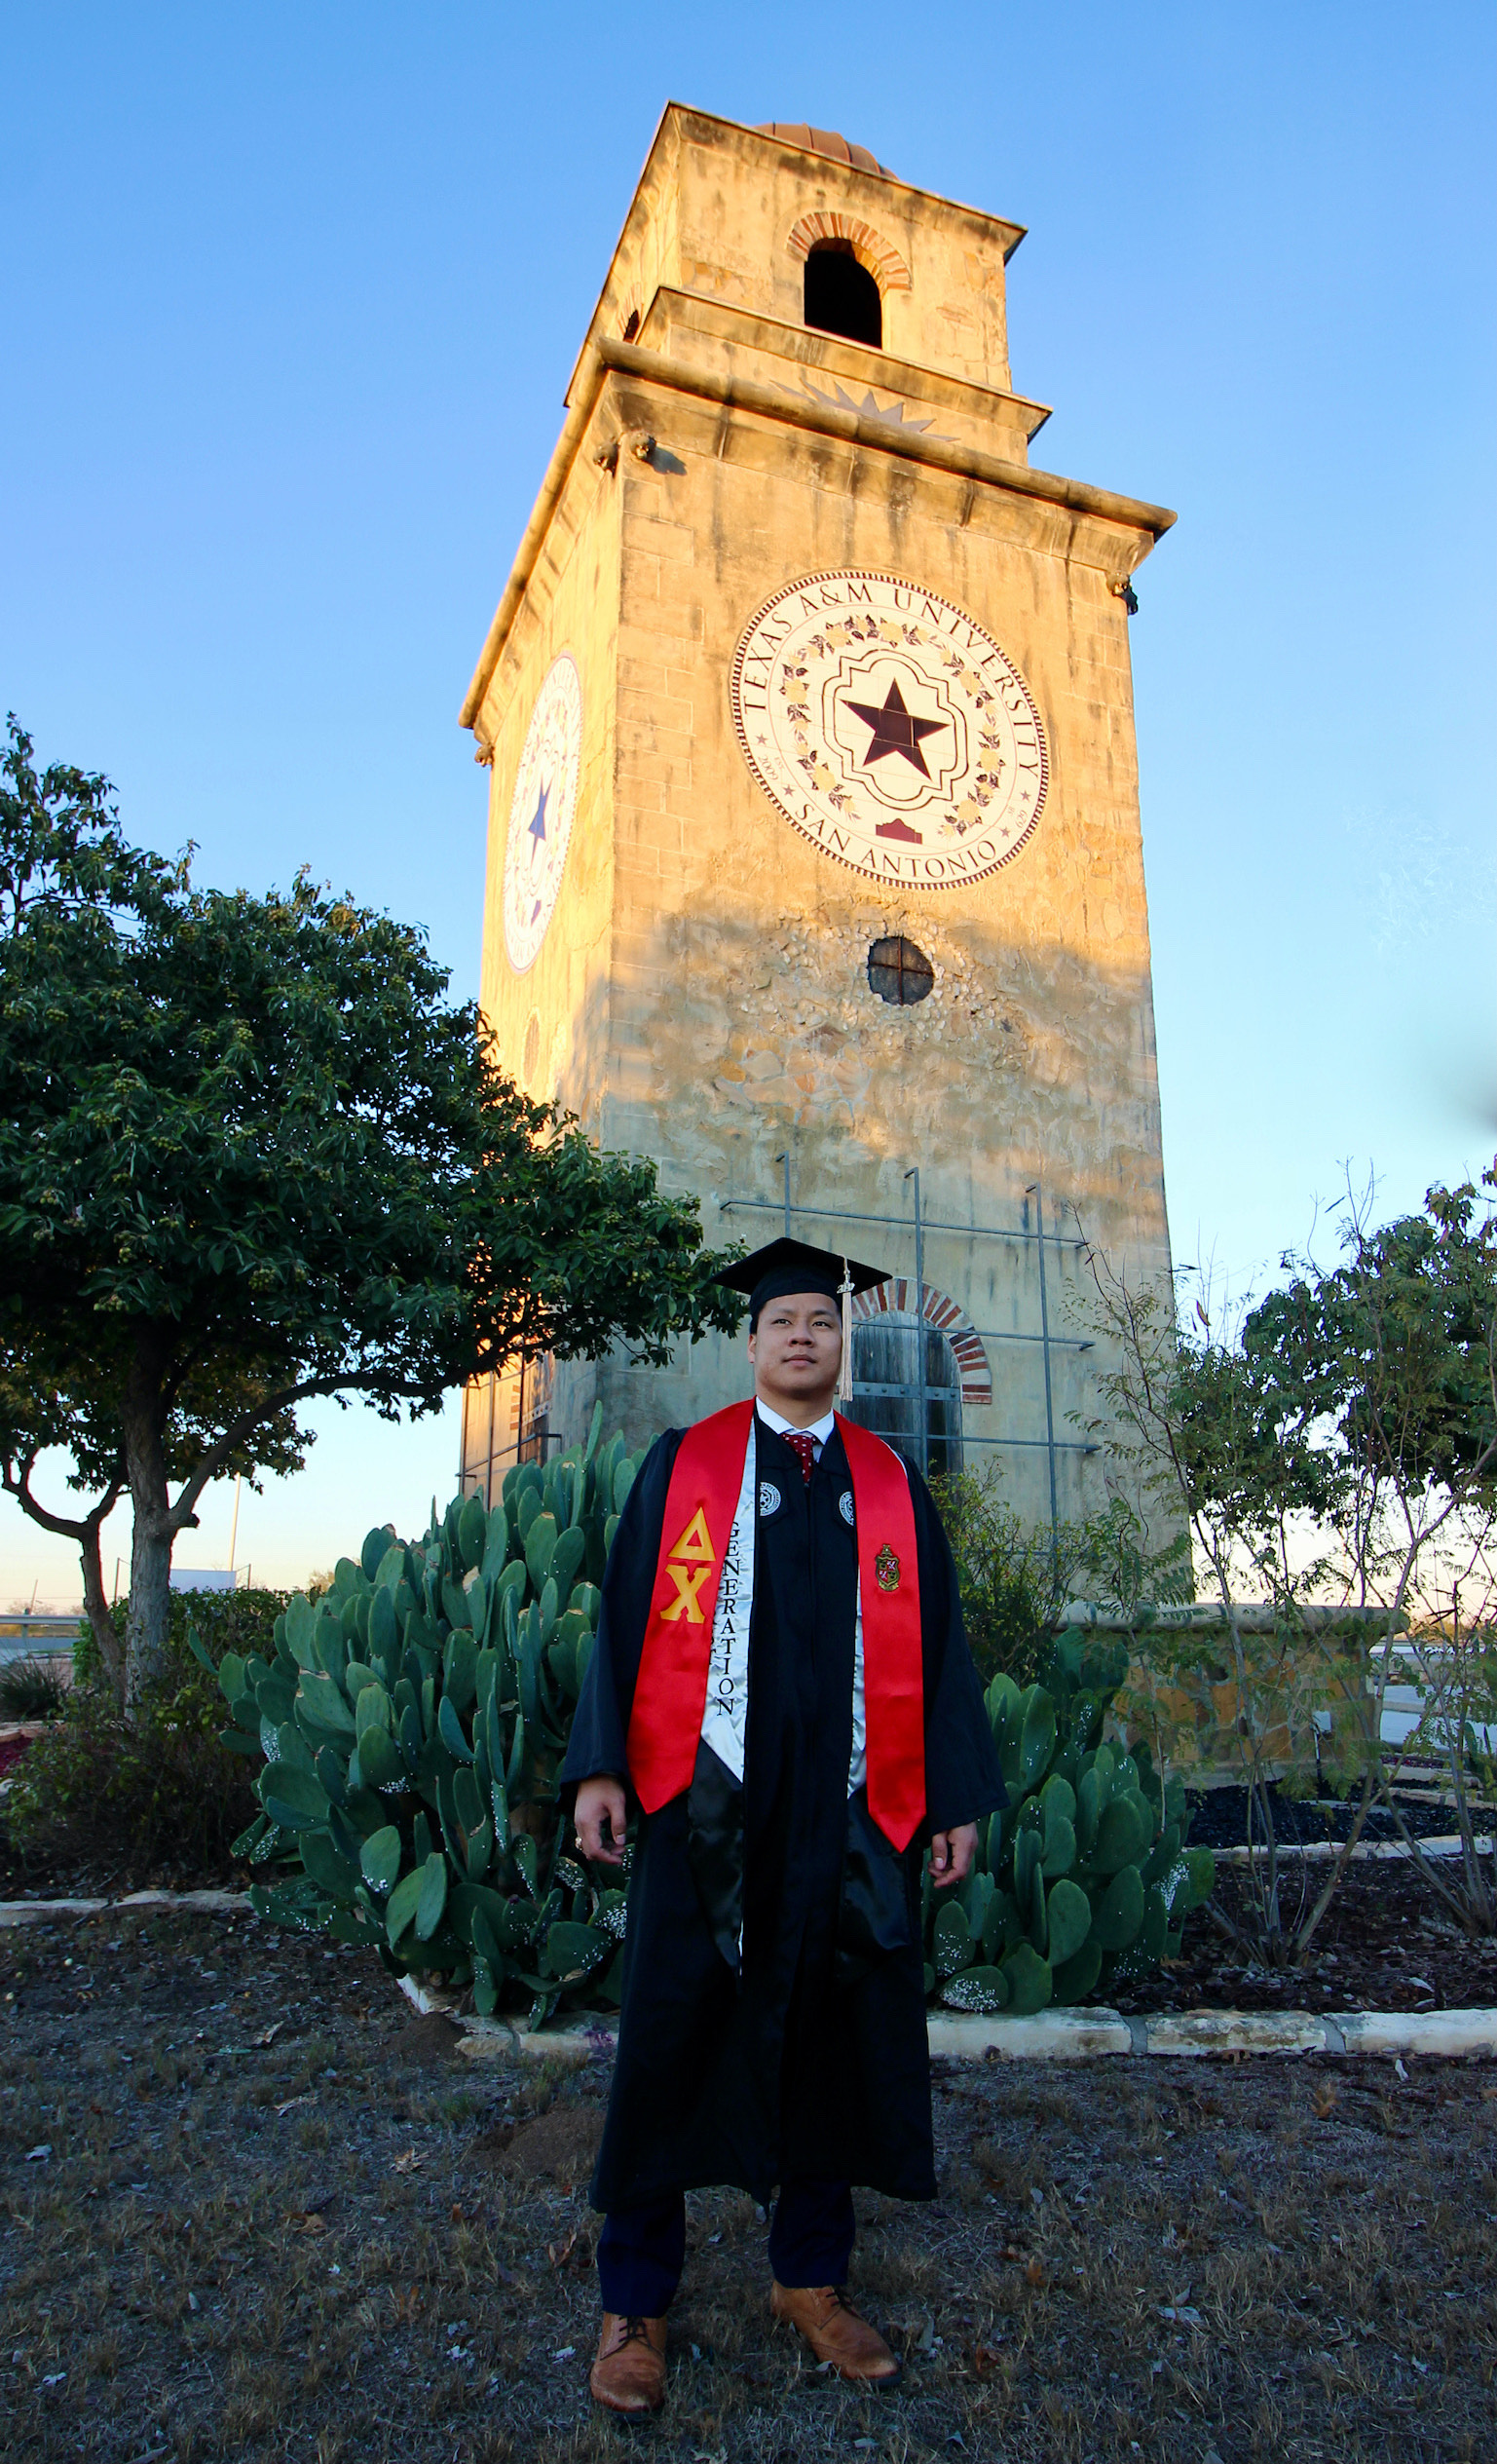 Ken Huynh poses in his graduation robe in front of the Torre de Esperanza (Tower of Hope) at the entrance to Texas A&M University San Antonio Dec. 2020.